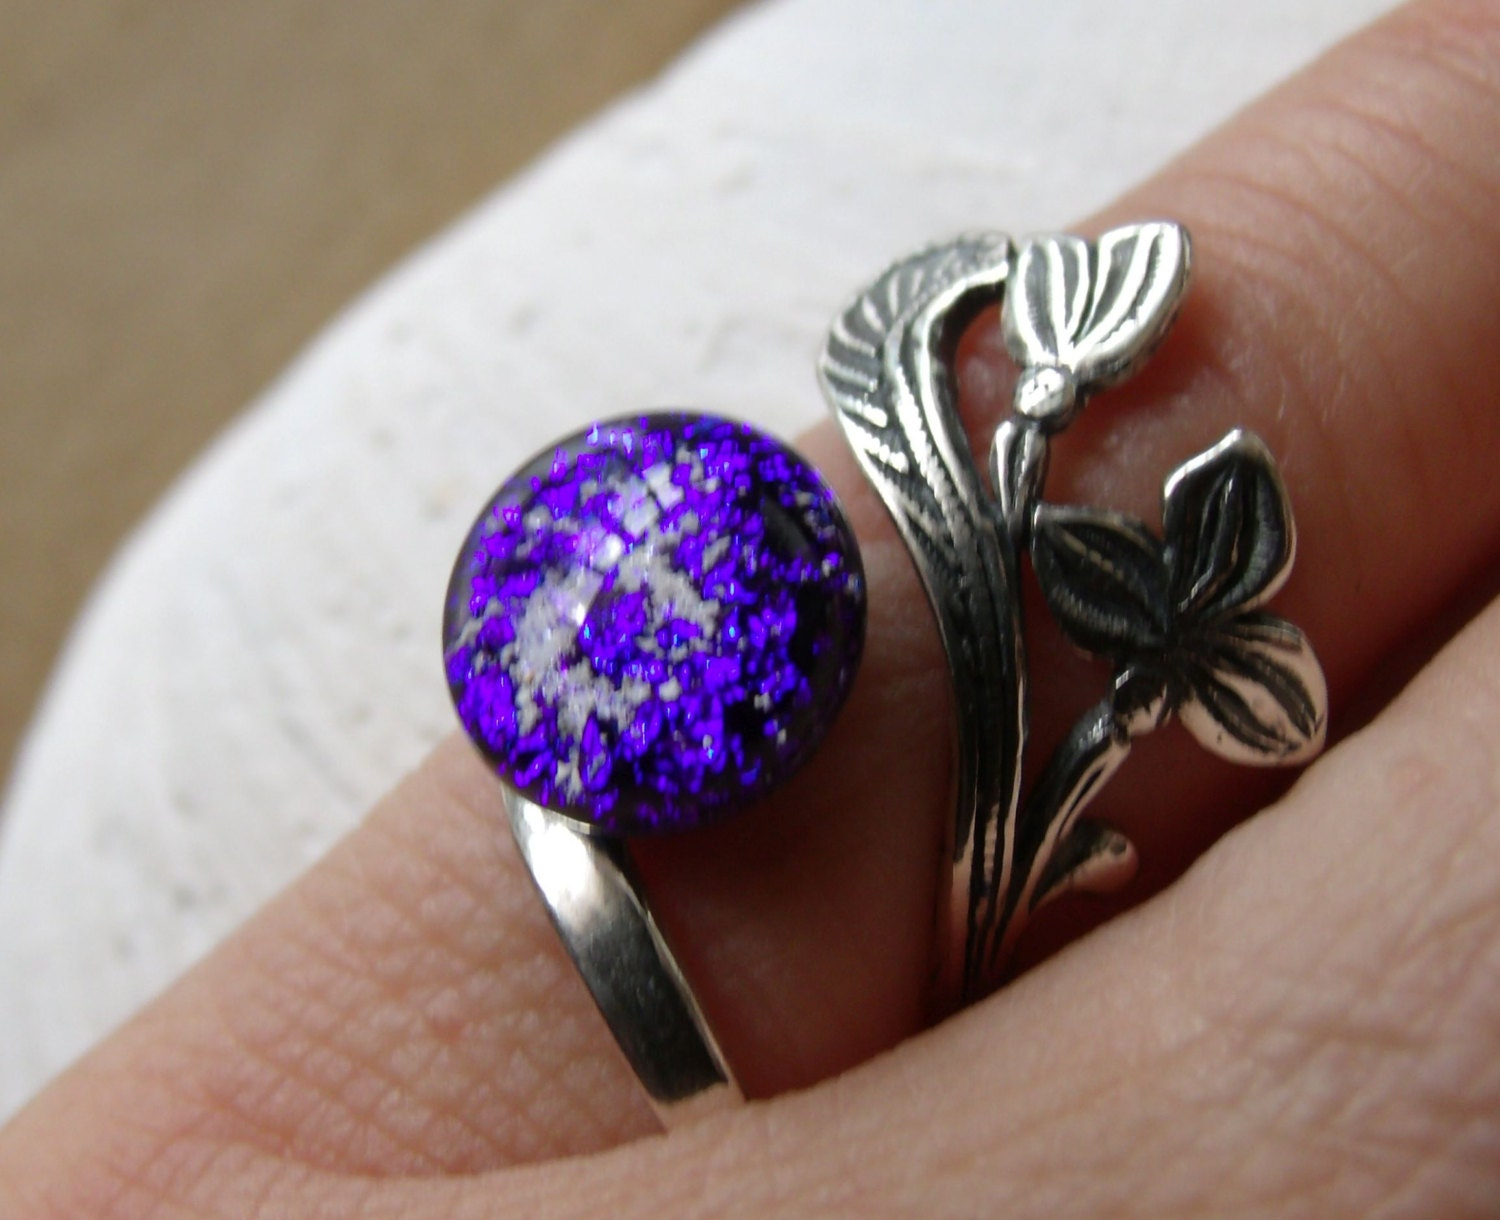 Cremation Jewelry Ring Sterling Silver Adjustable Tassle. Celestial Engagement Rings. 29 Carat Engagement Rings. Irish Mens Wedding Wedding Rings. Mens Rock Wedding Rings. Aqua Blue Engagement Rings. 3 Stone Amethyst Engagement Rings. Prince William Engagement Rings. Yarn Rings